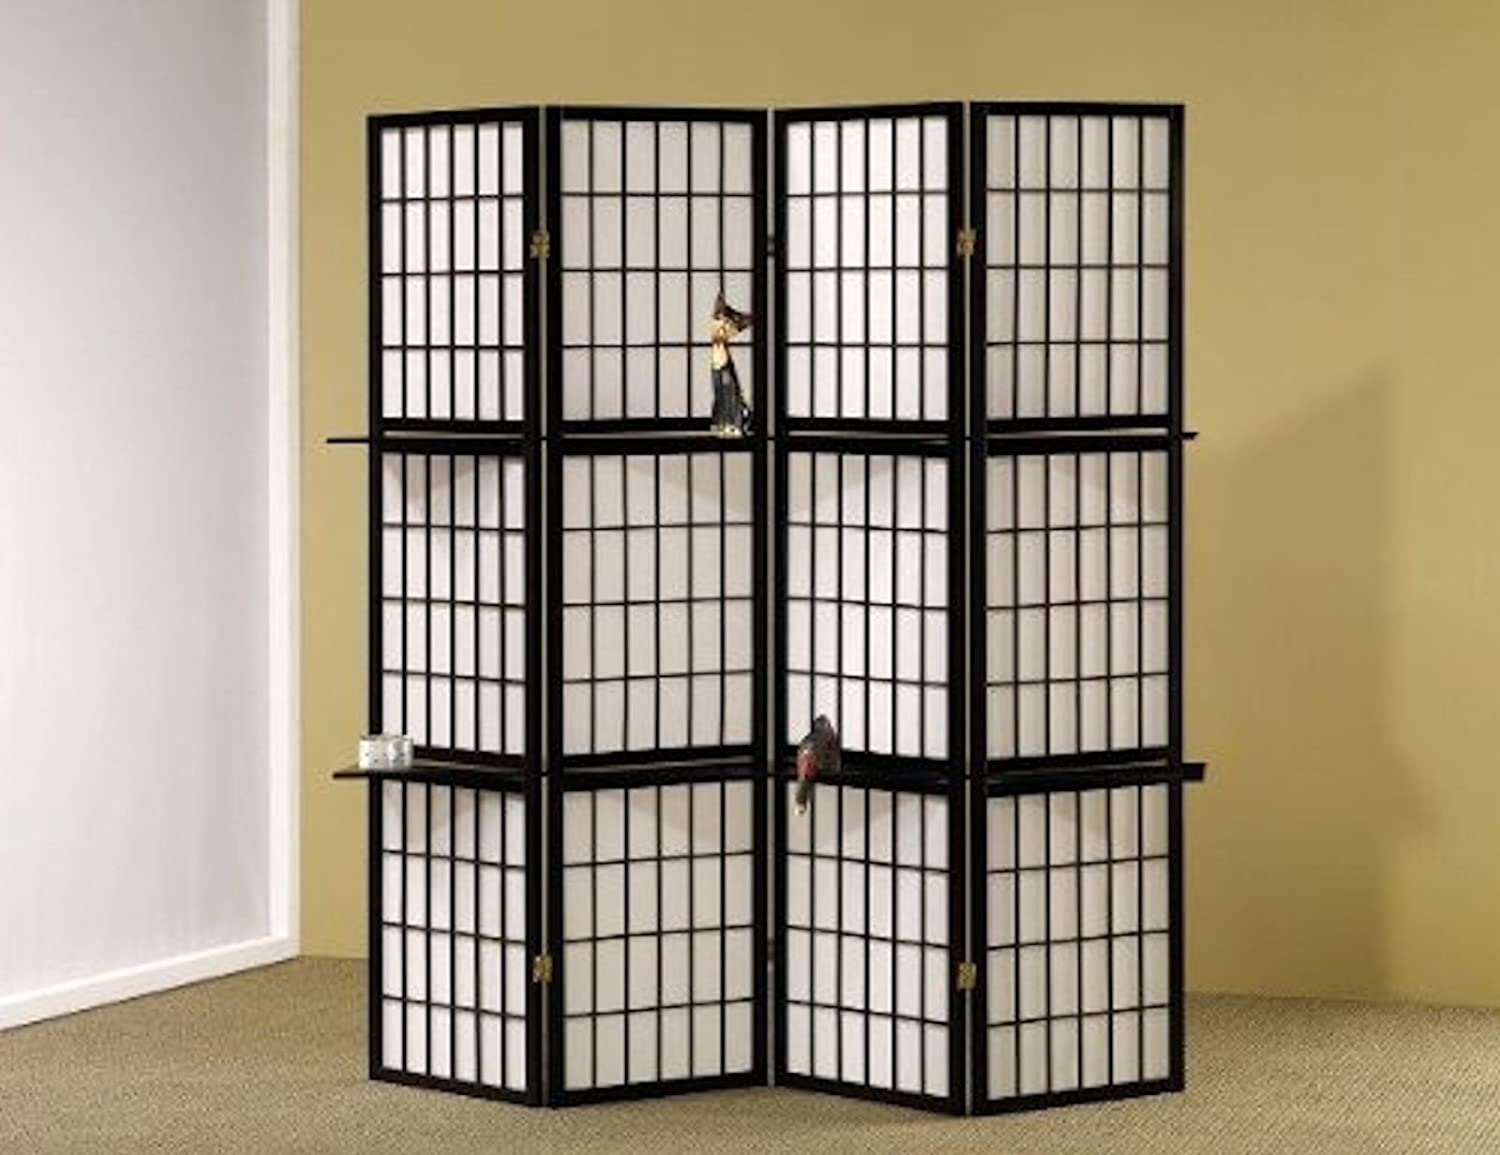 Amazon Com 4 Panel Shoji Folding Screen Room Dividers With Shelving Black Finish Kitchen Dining